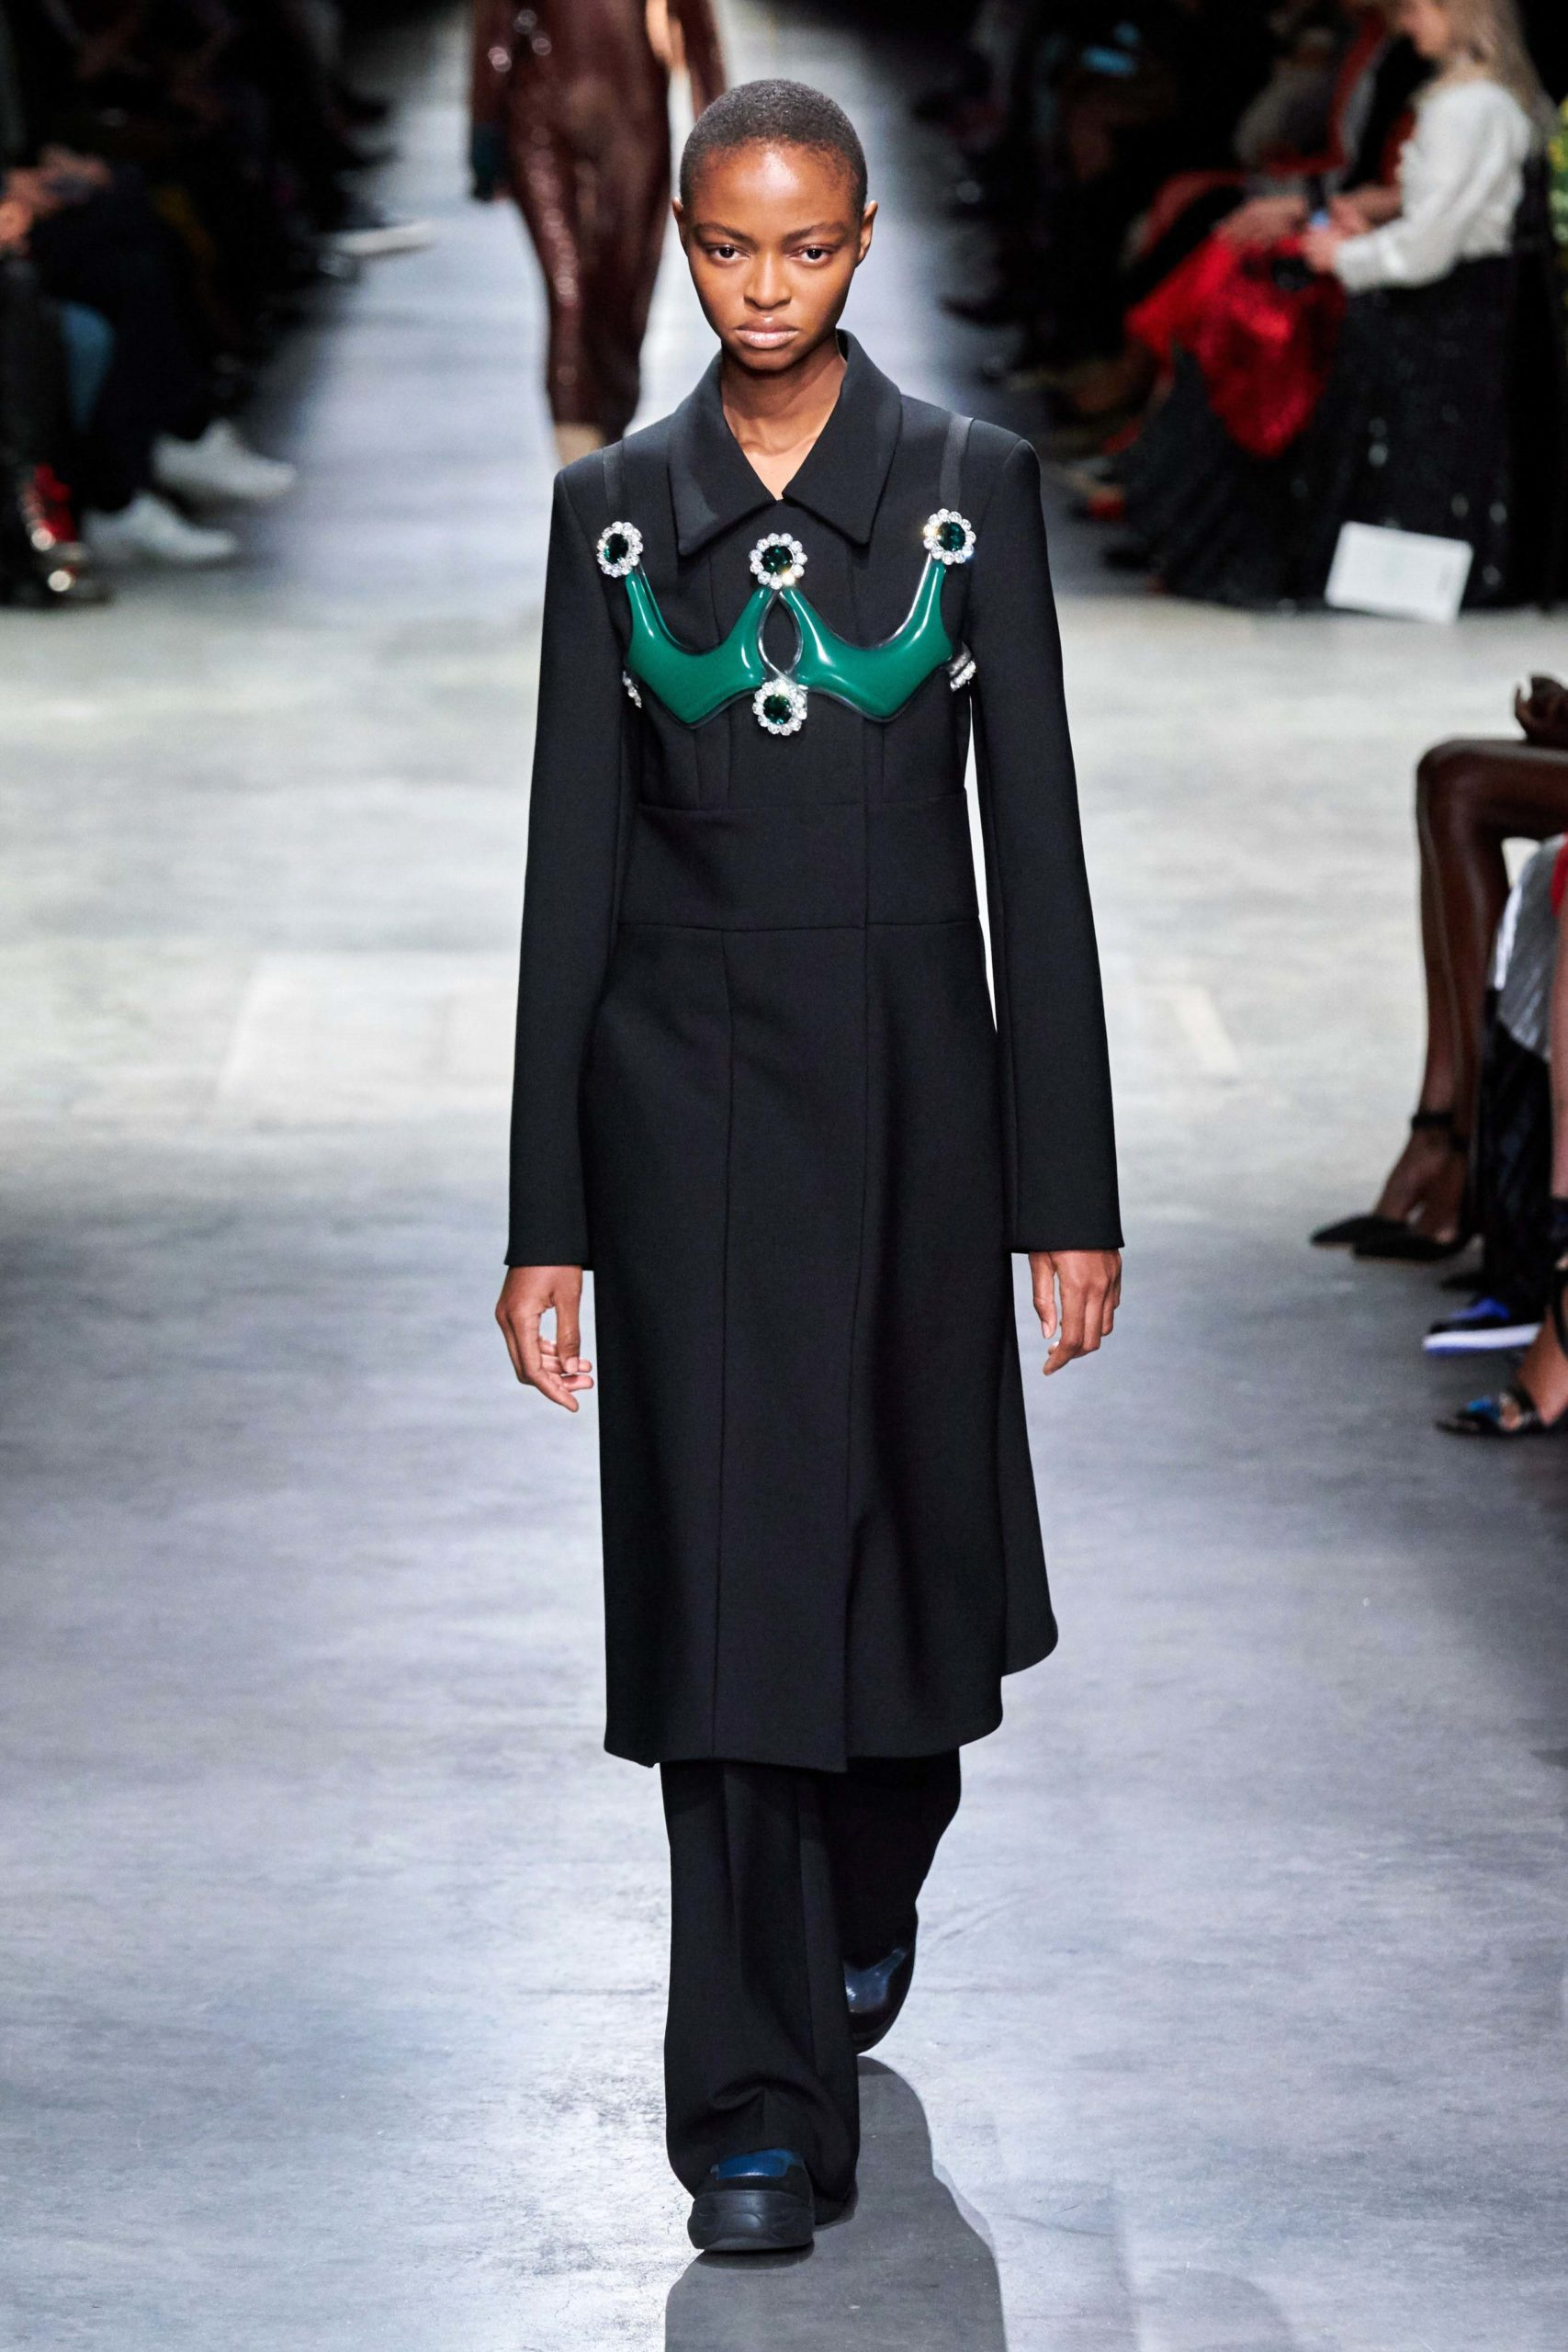 Christopher Kane Fall 2020 trends runway report Ready To Wear Vogue plastron button jewels